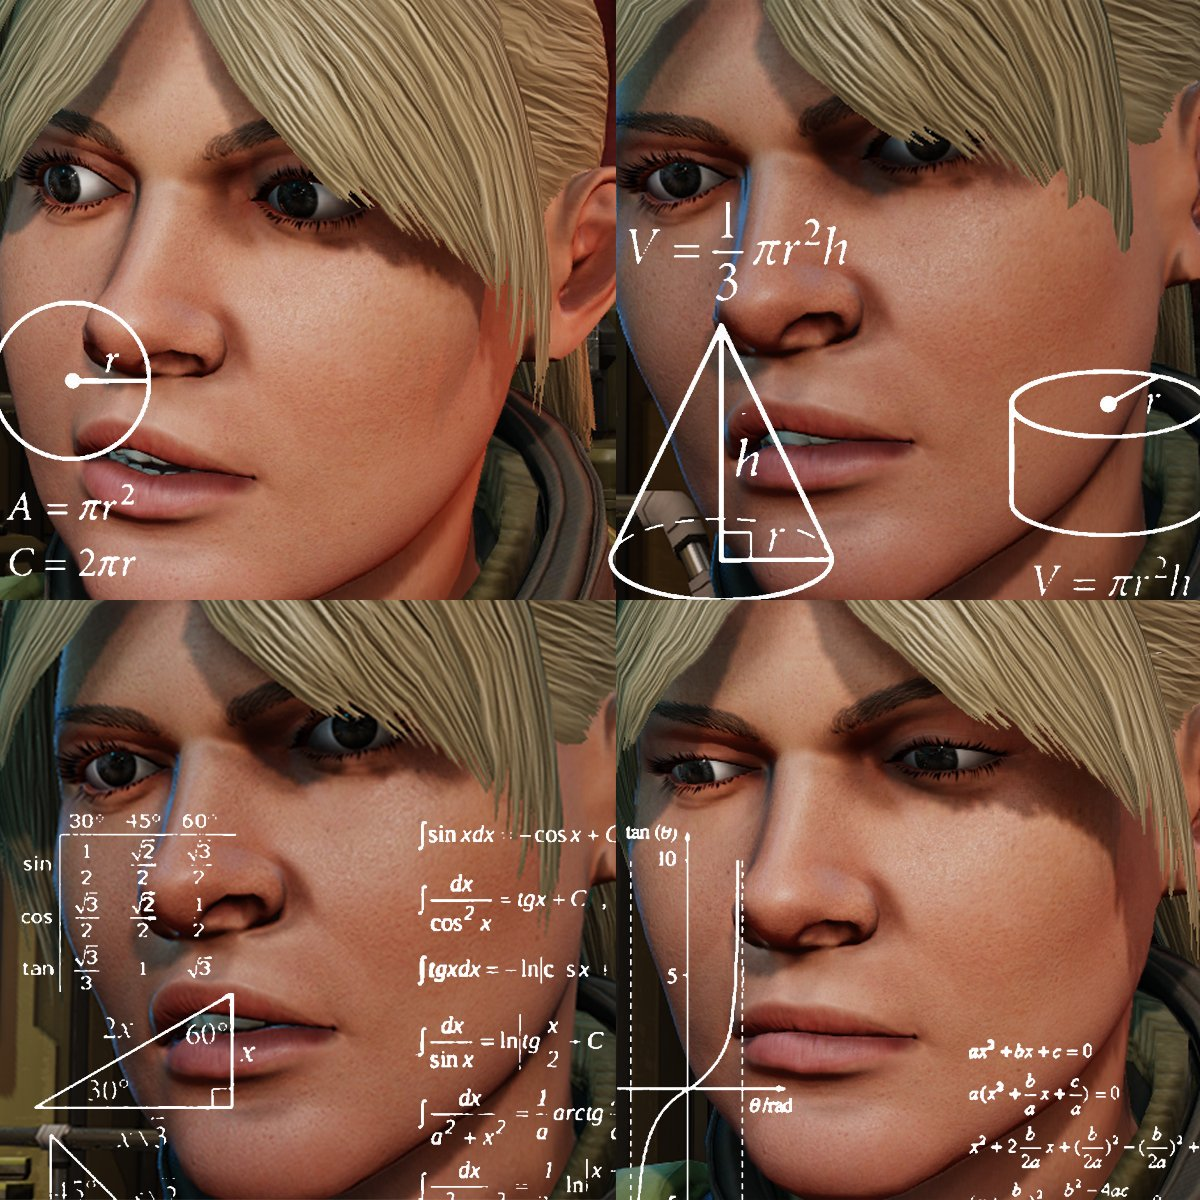 RT @XCOM: @SolomonJake @ManMadeMoon When you're trying to figure out how you missed that high-percentage shot... https://t.co/REpuuF8PbU